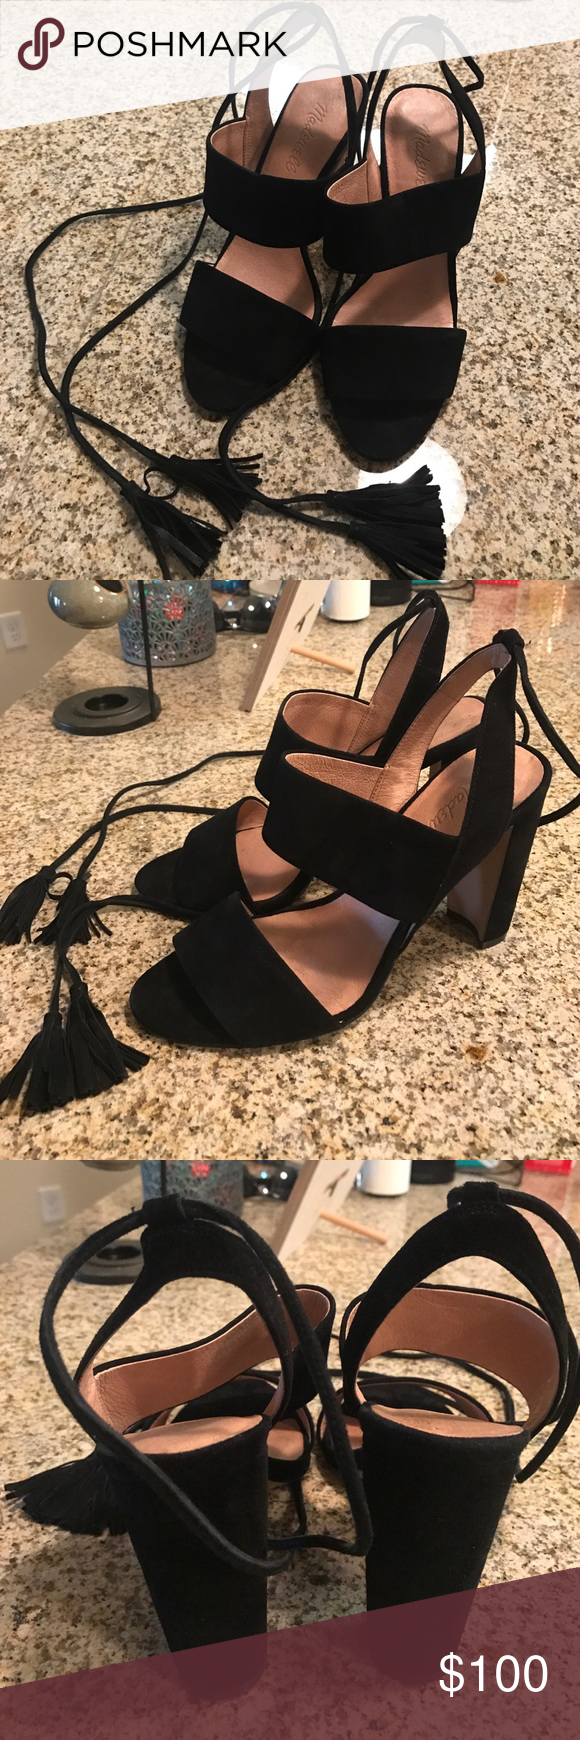 "Madewell Black Suede and Leather Heel Worn once to a formal event for a couple hours! 4"" heel, leather with leather lining! I normally wear a 7 1/2 but these ran a little bigger so I sized down. Madewell Shoes Heels"